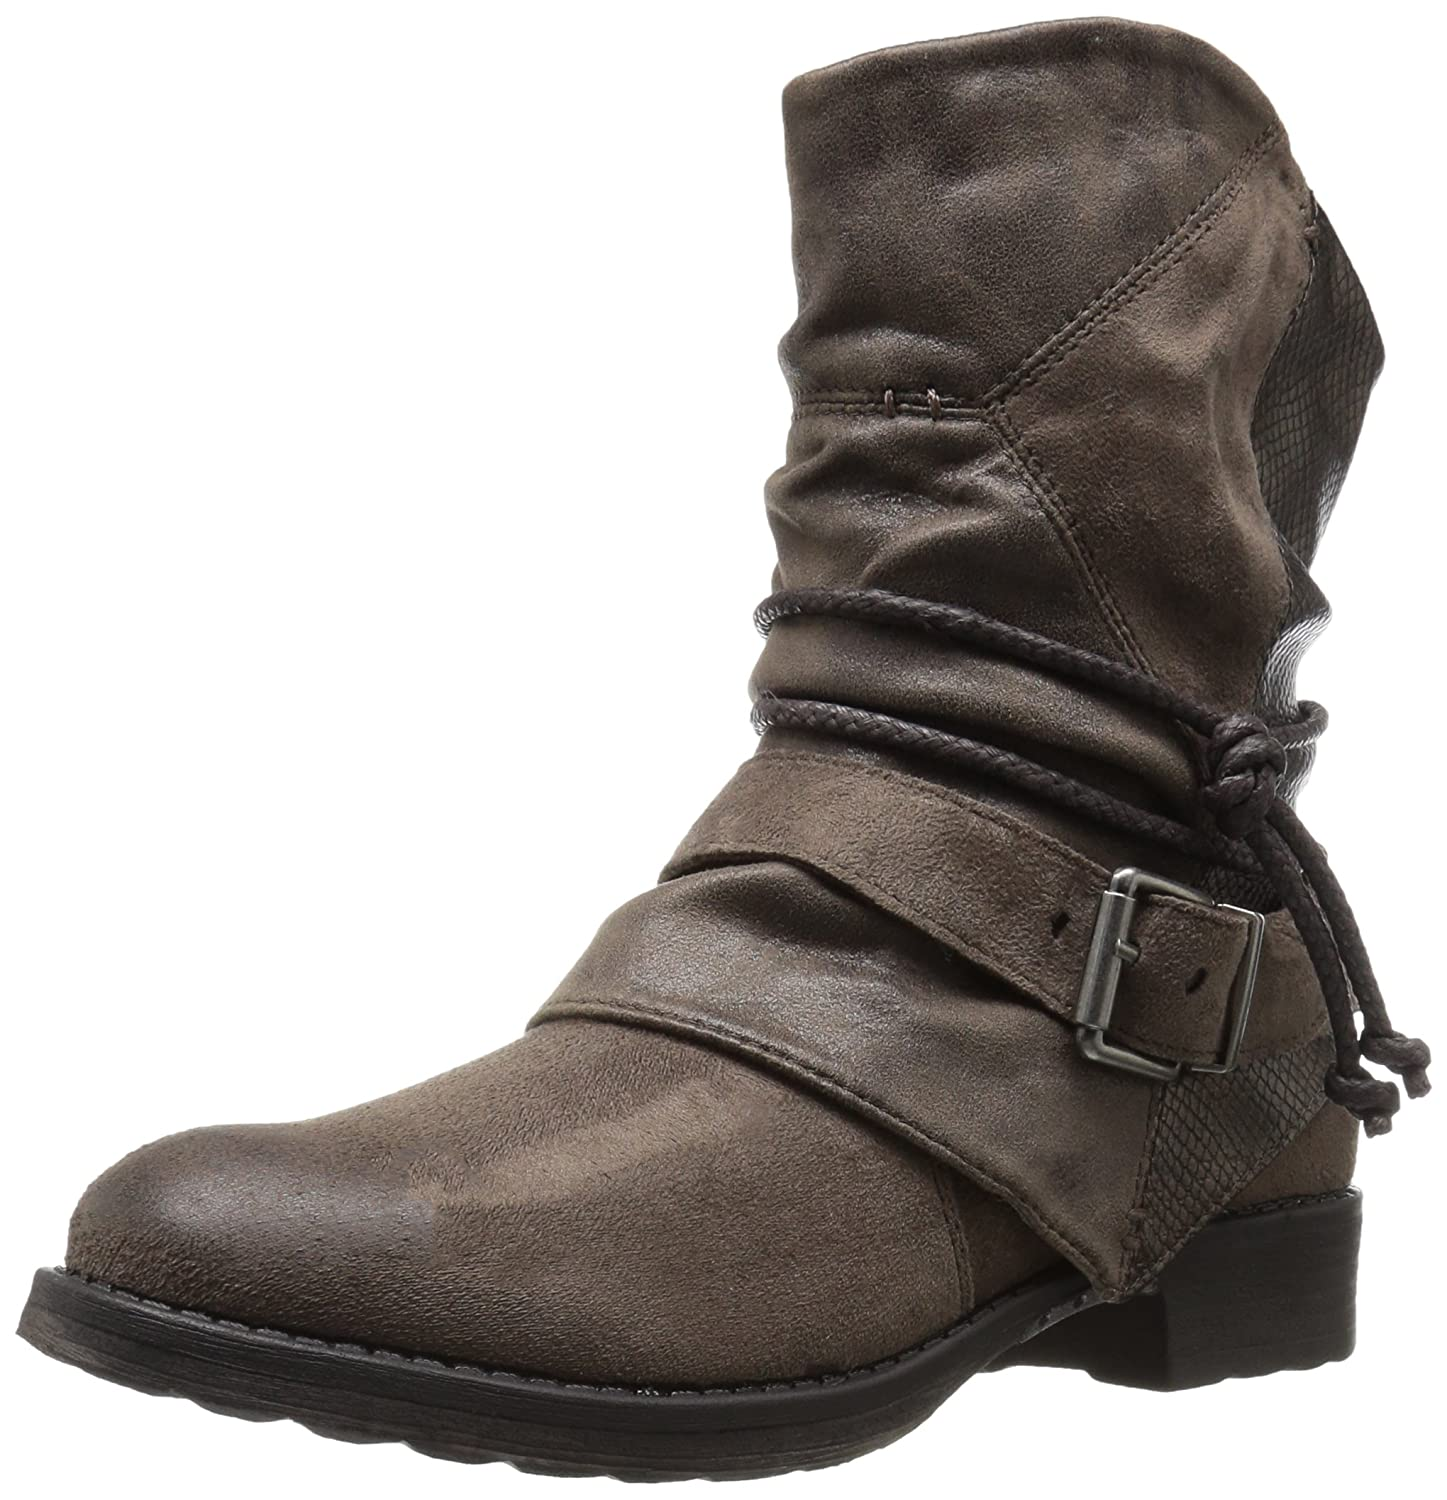 Amazon.com   Dirty Laundry by Chinese Laundry Women's Ttyl Boot, Brown  Smooth, 6.5 M US   Mid-Calf